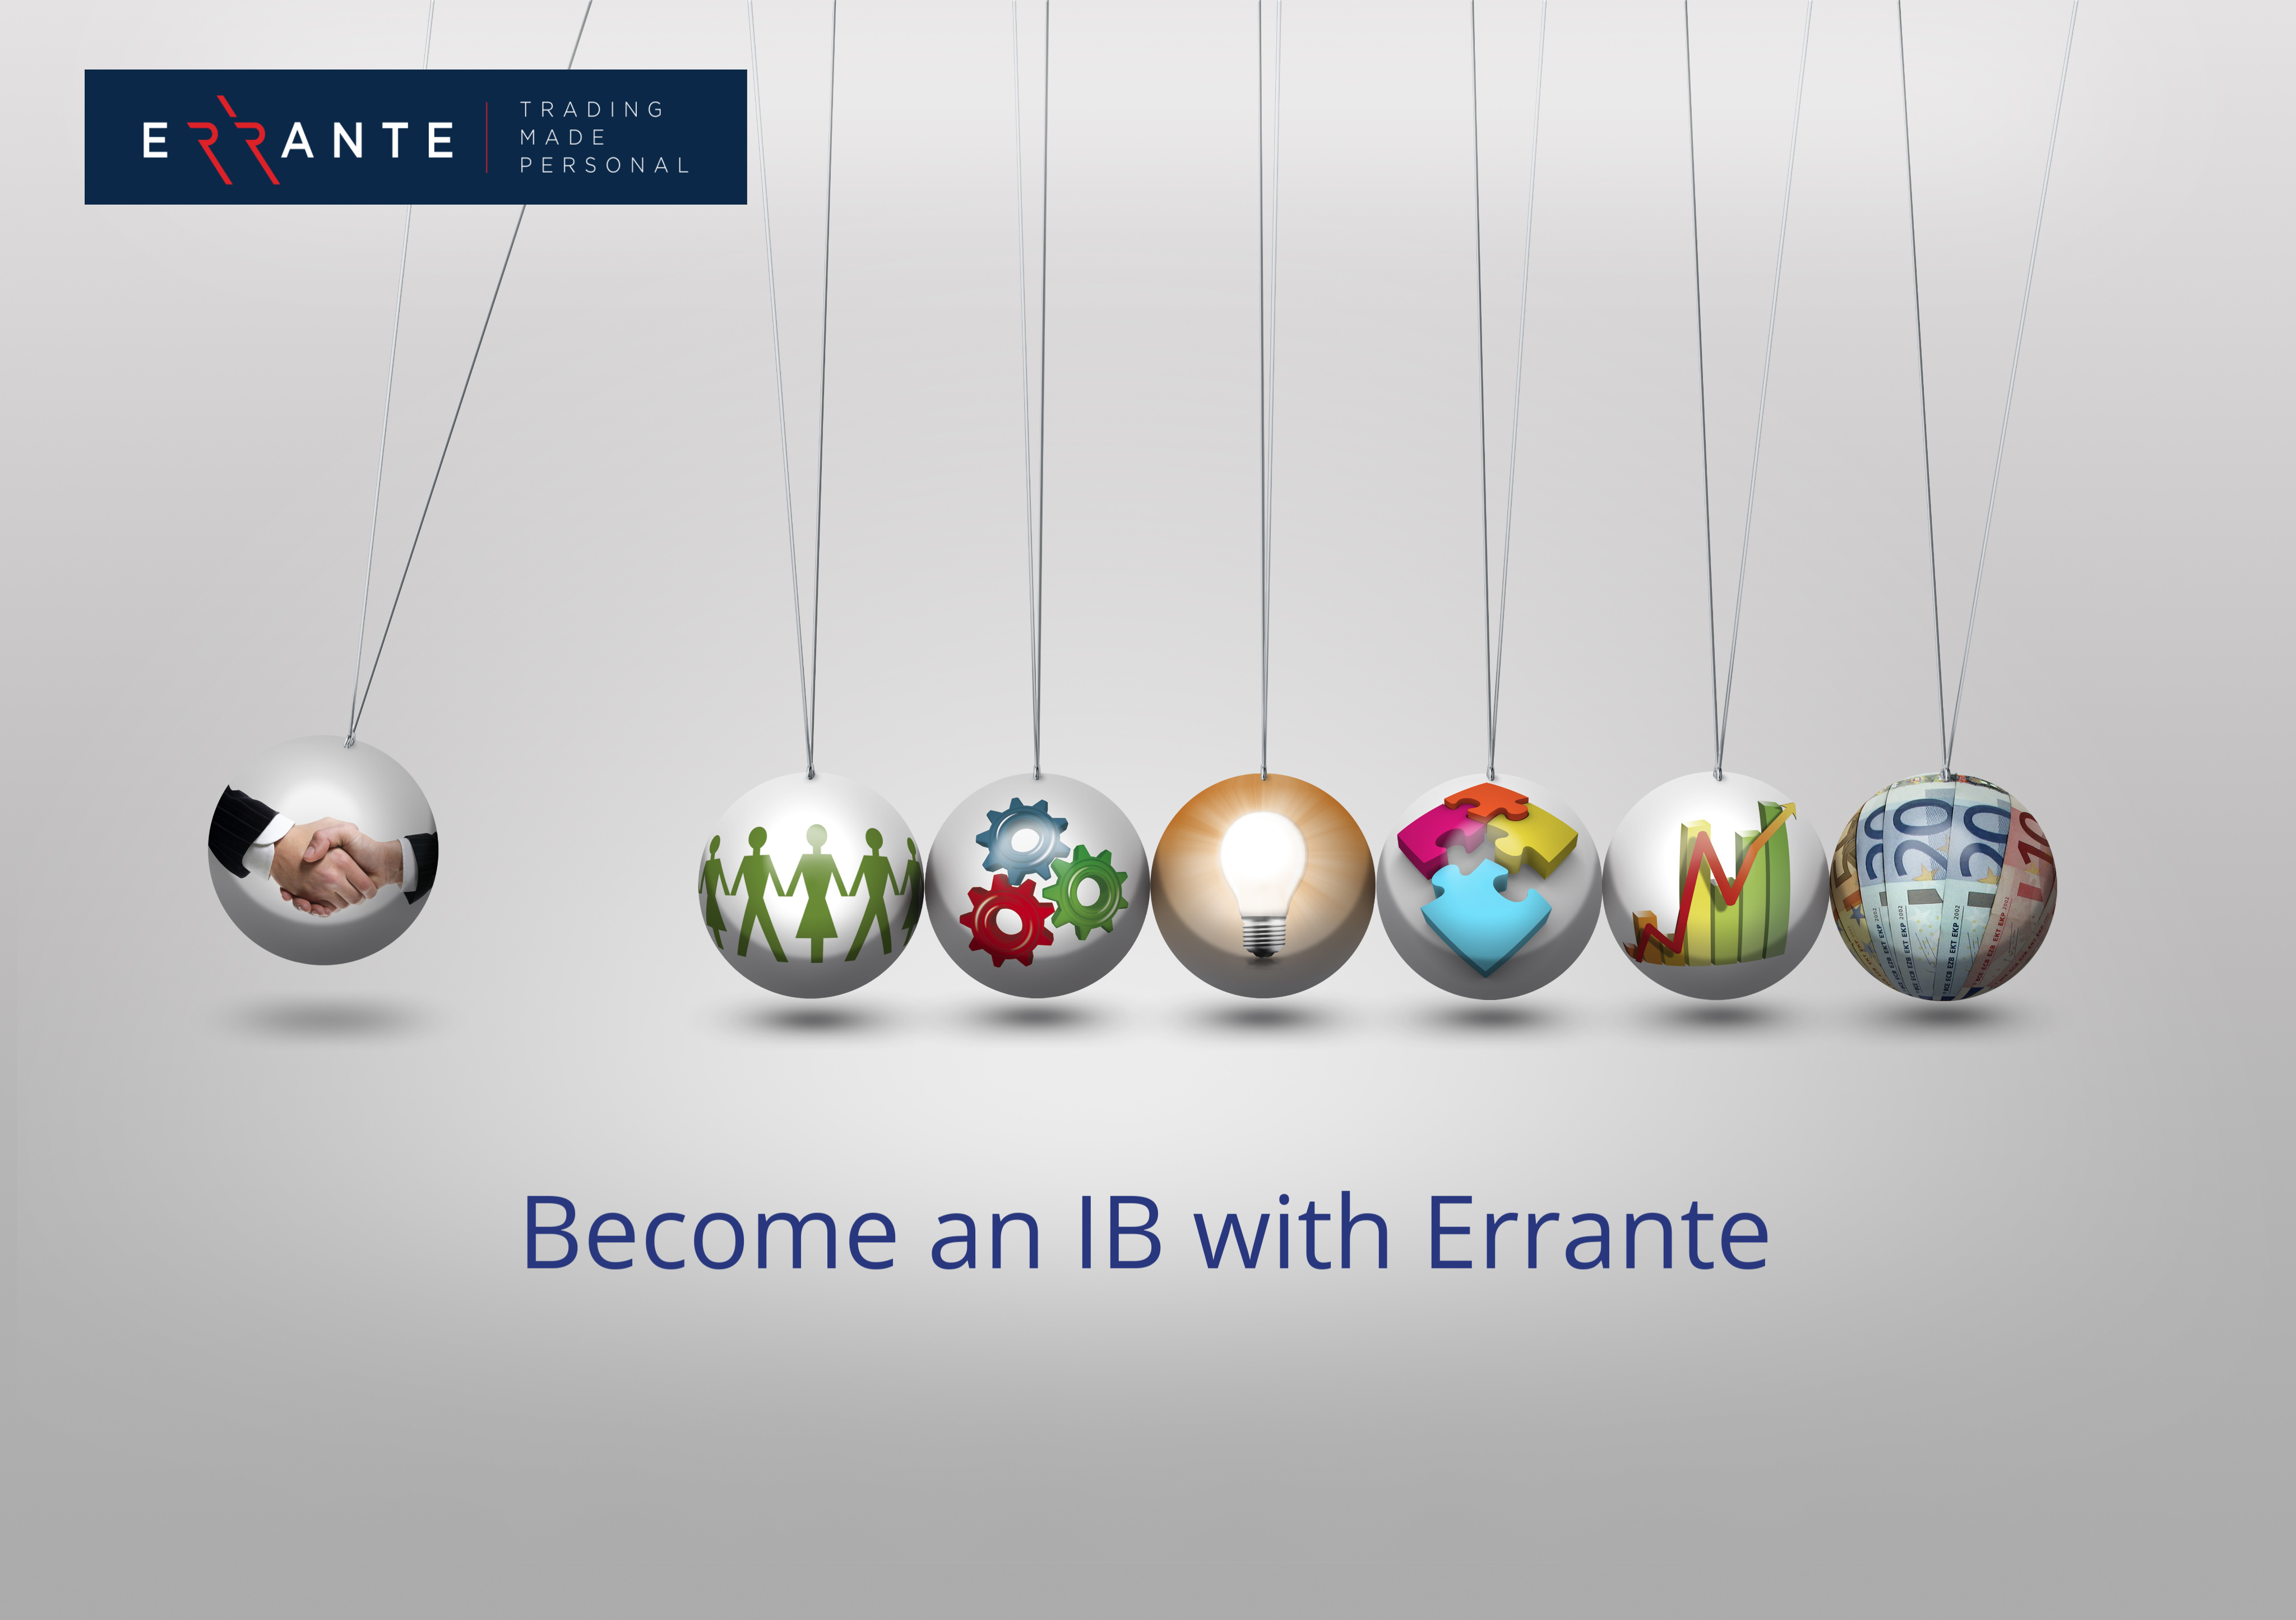 Become an IB with Errante